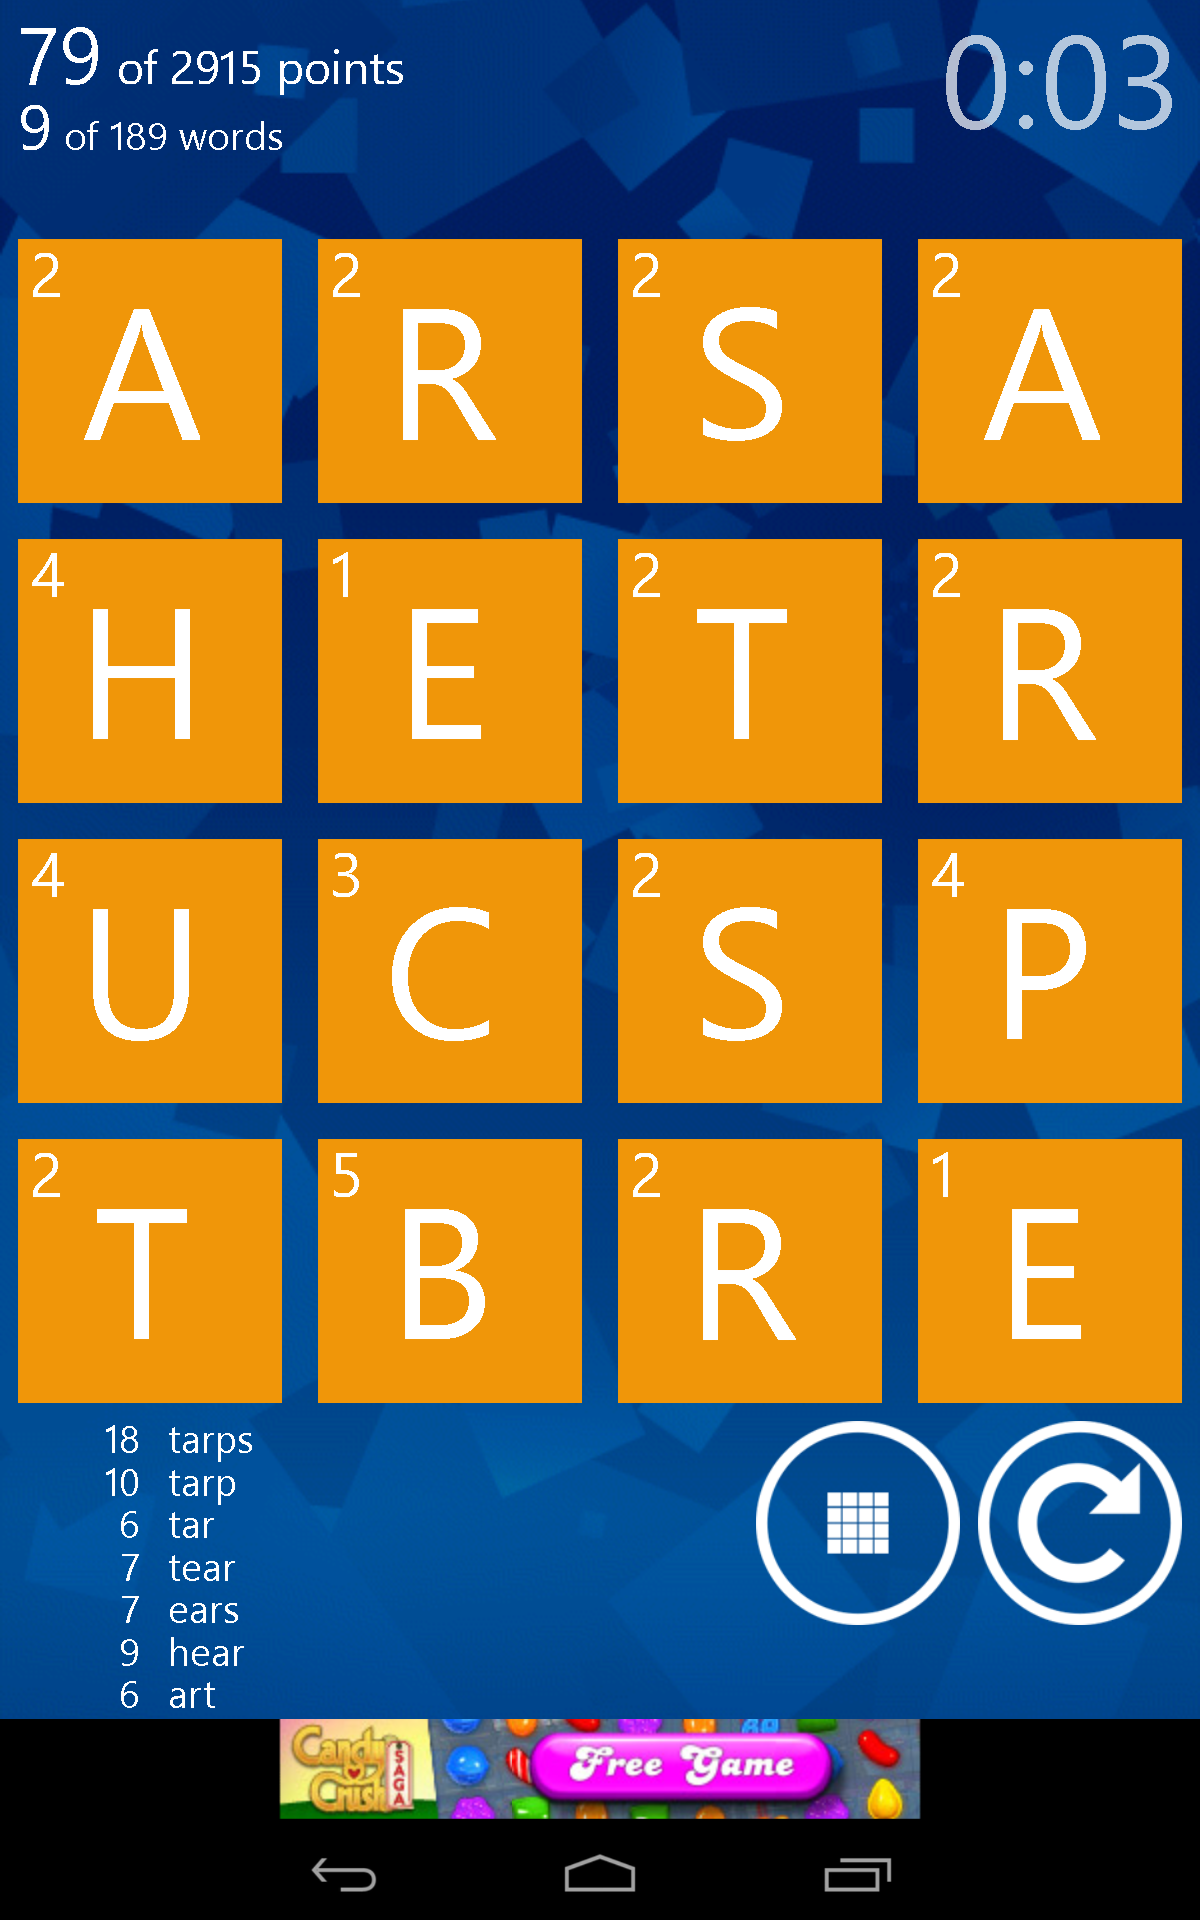 New game microsoft releases wordament online word puzzle game on 2013 10 06 225739 ccuart Image collections